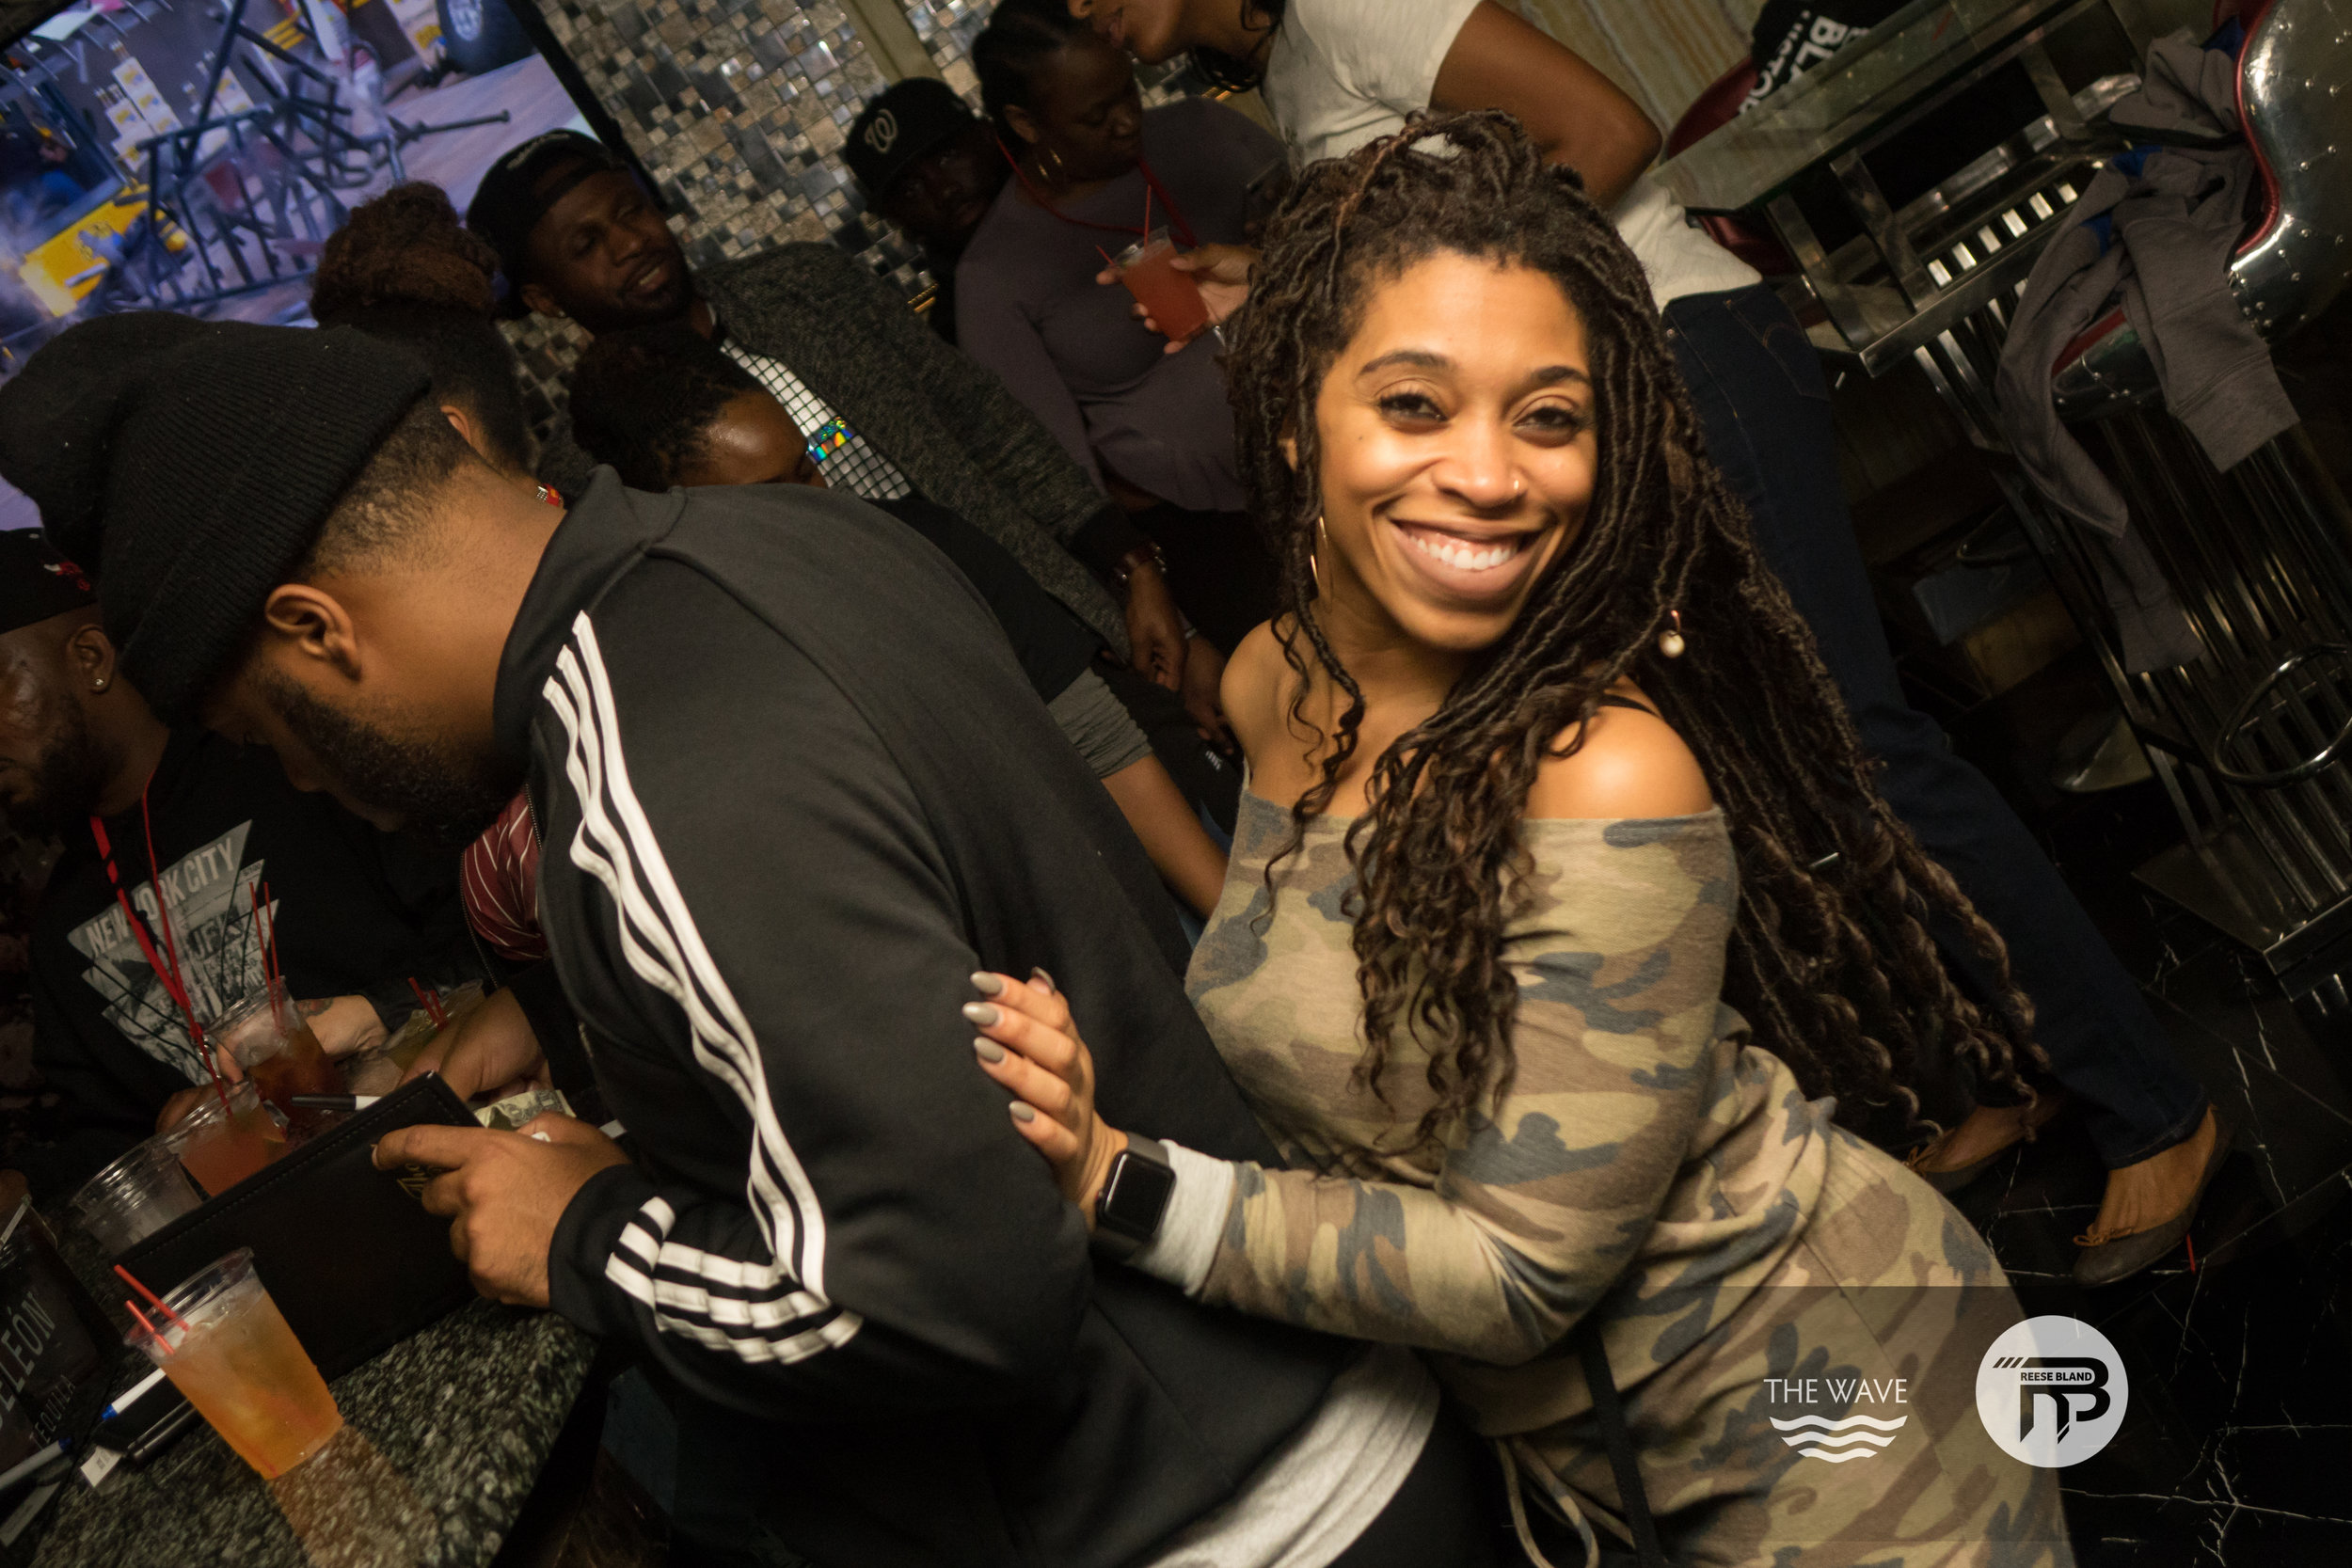 WaveDC-BlackBarCrawl-2-2018-07019.jpg